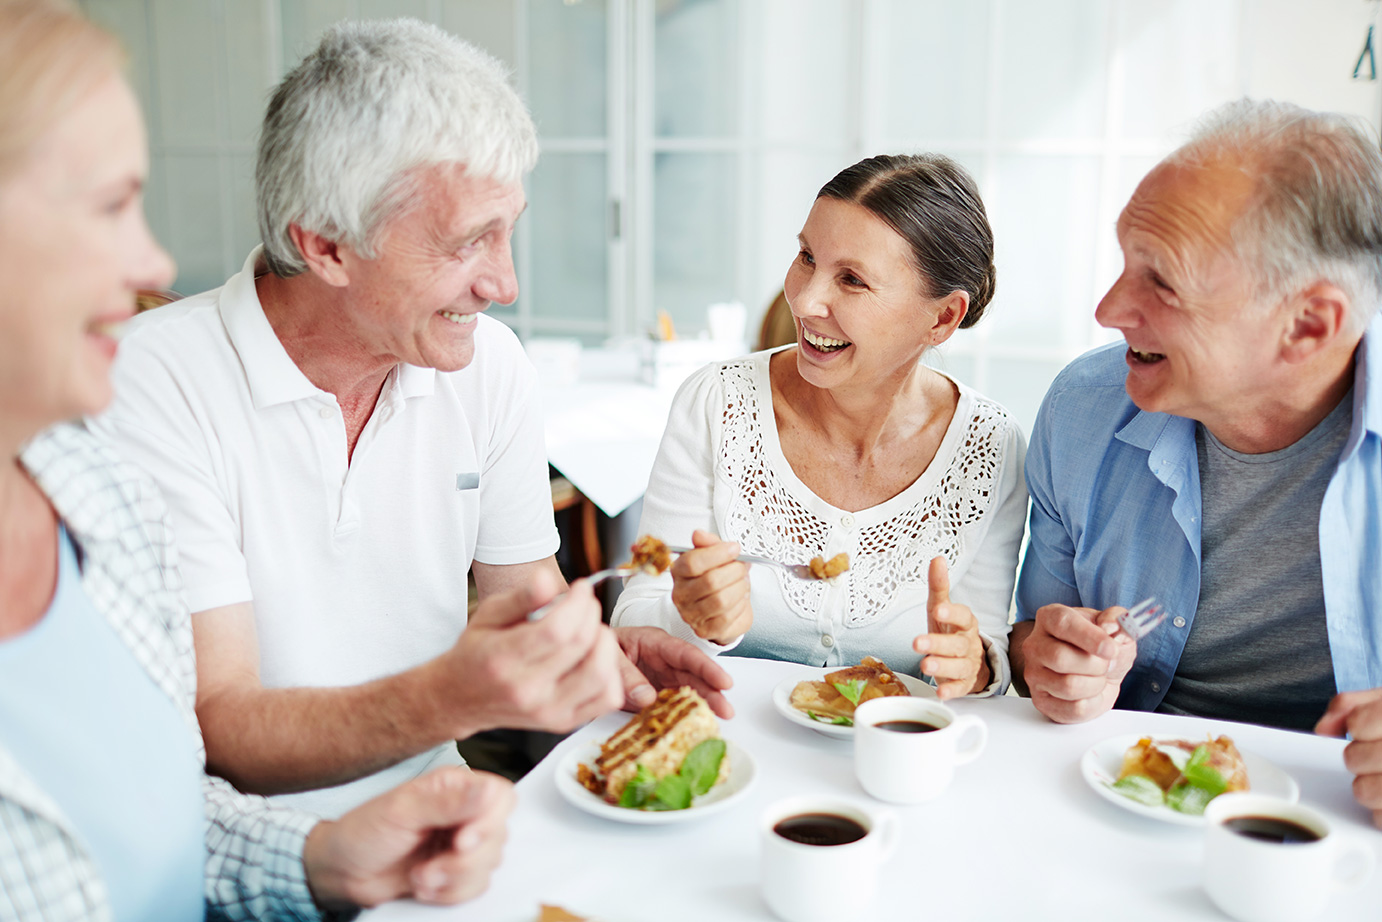 10 Tips for Finding a Senior Lifestyle Community